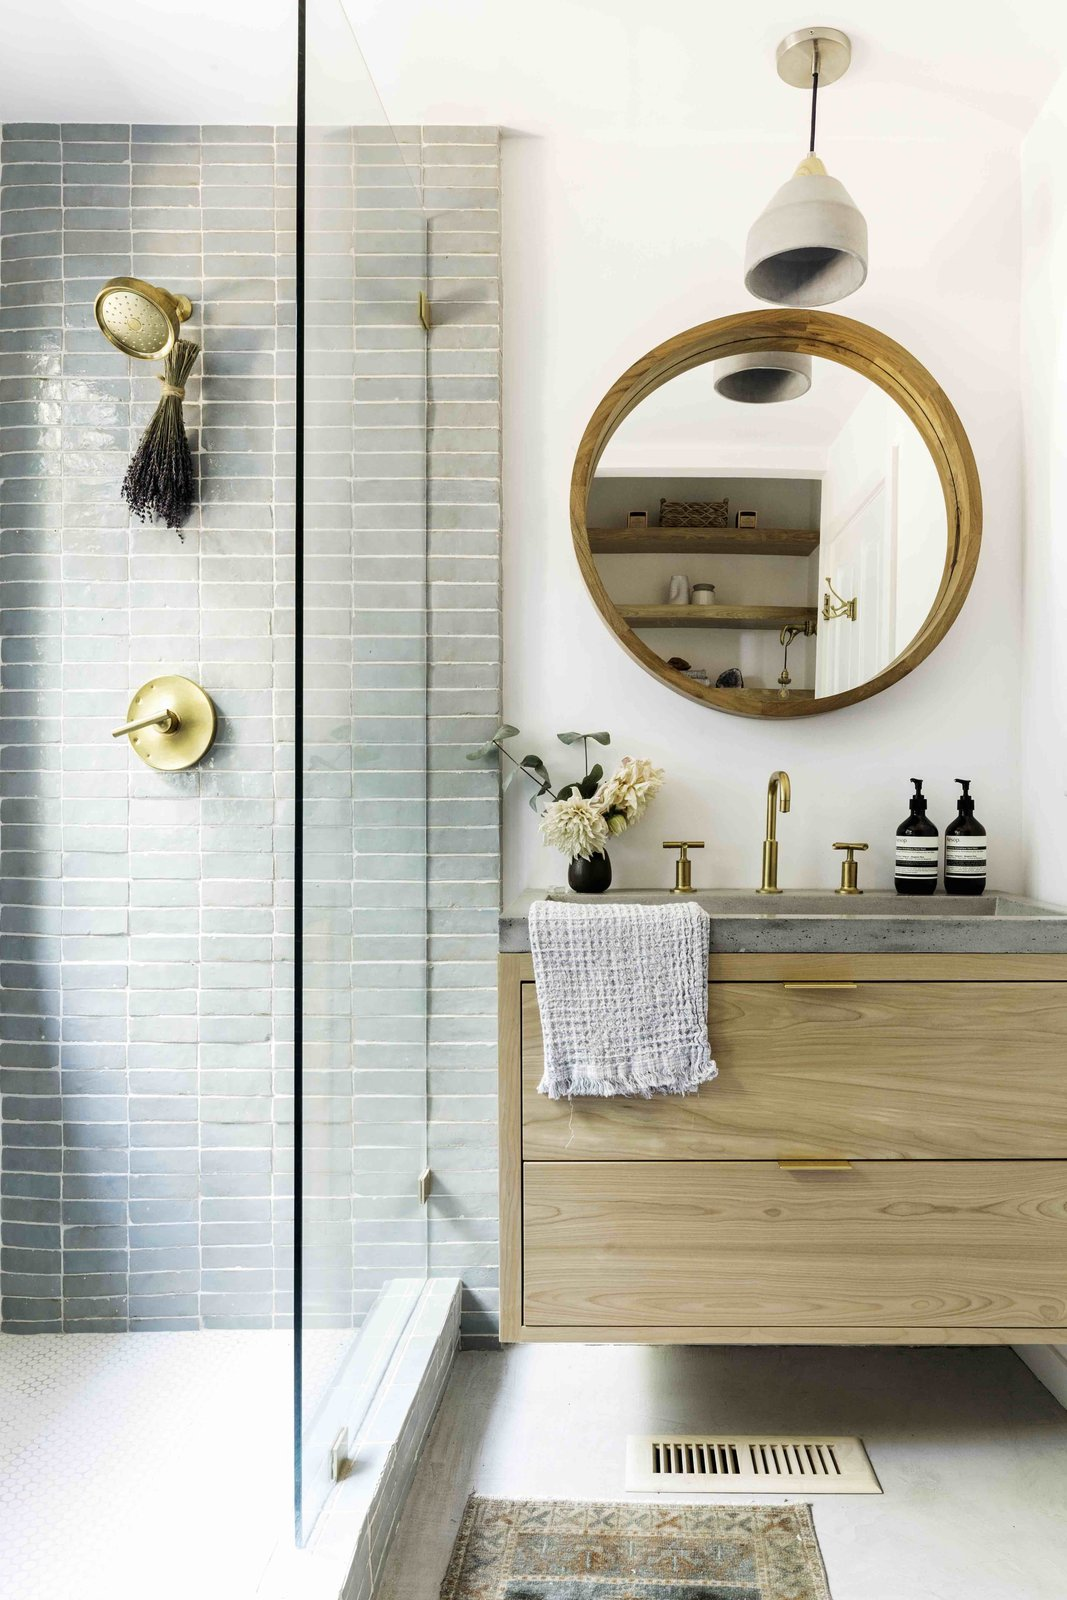 Bath Room, Concrete Counter, Concrete Floor, Vessel Sink, Subway Tile Wall, Pendant Lighting, and Open Shower guest bathroom with my favorite tile & custom vanity cabinets made by our friend  Bonny Doon Forest Temple